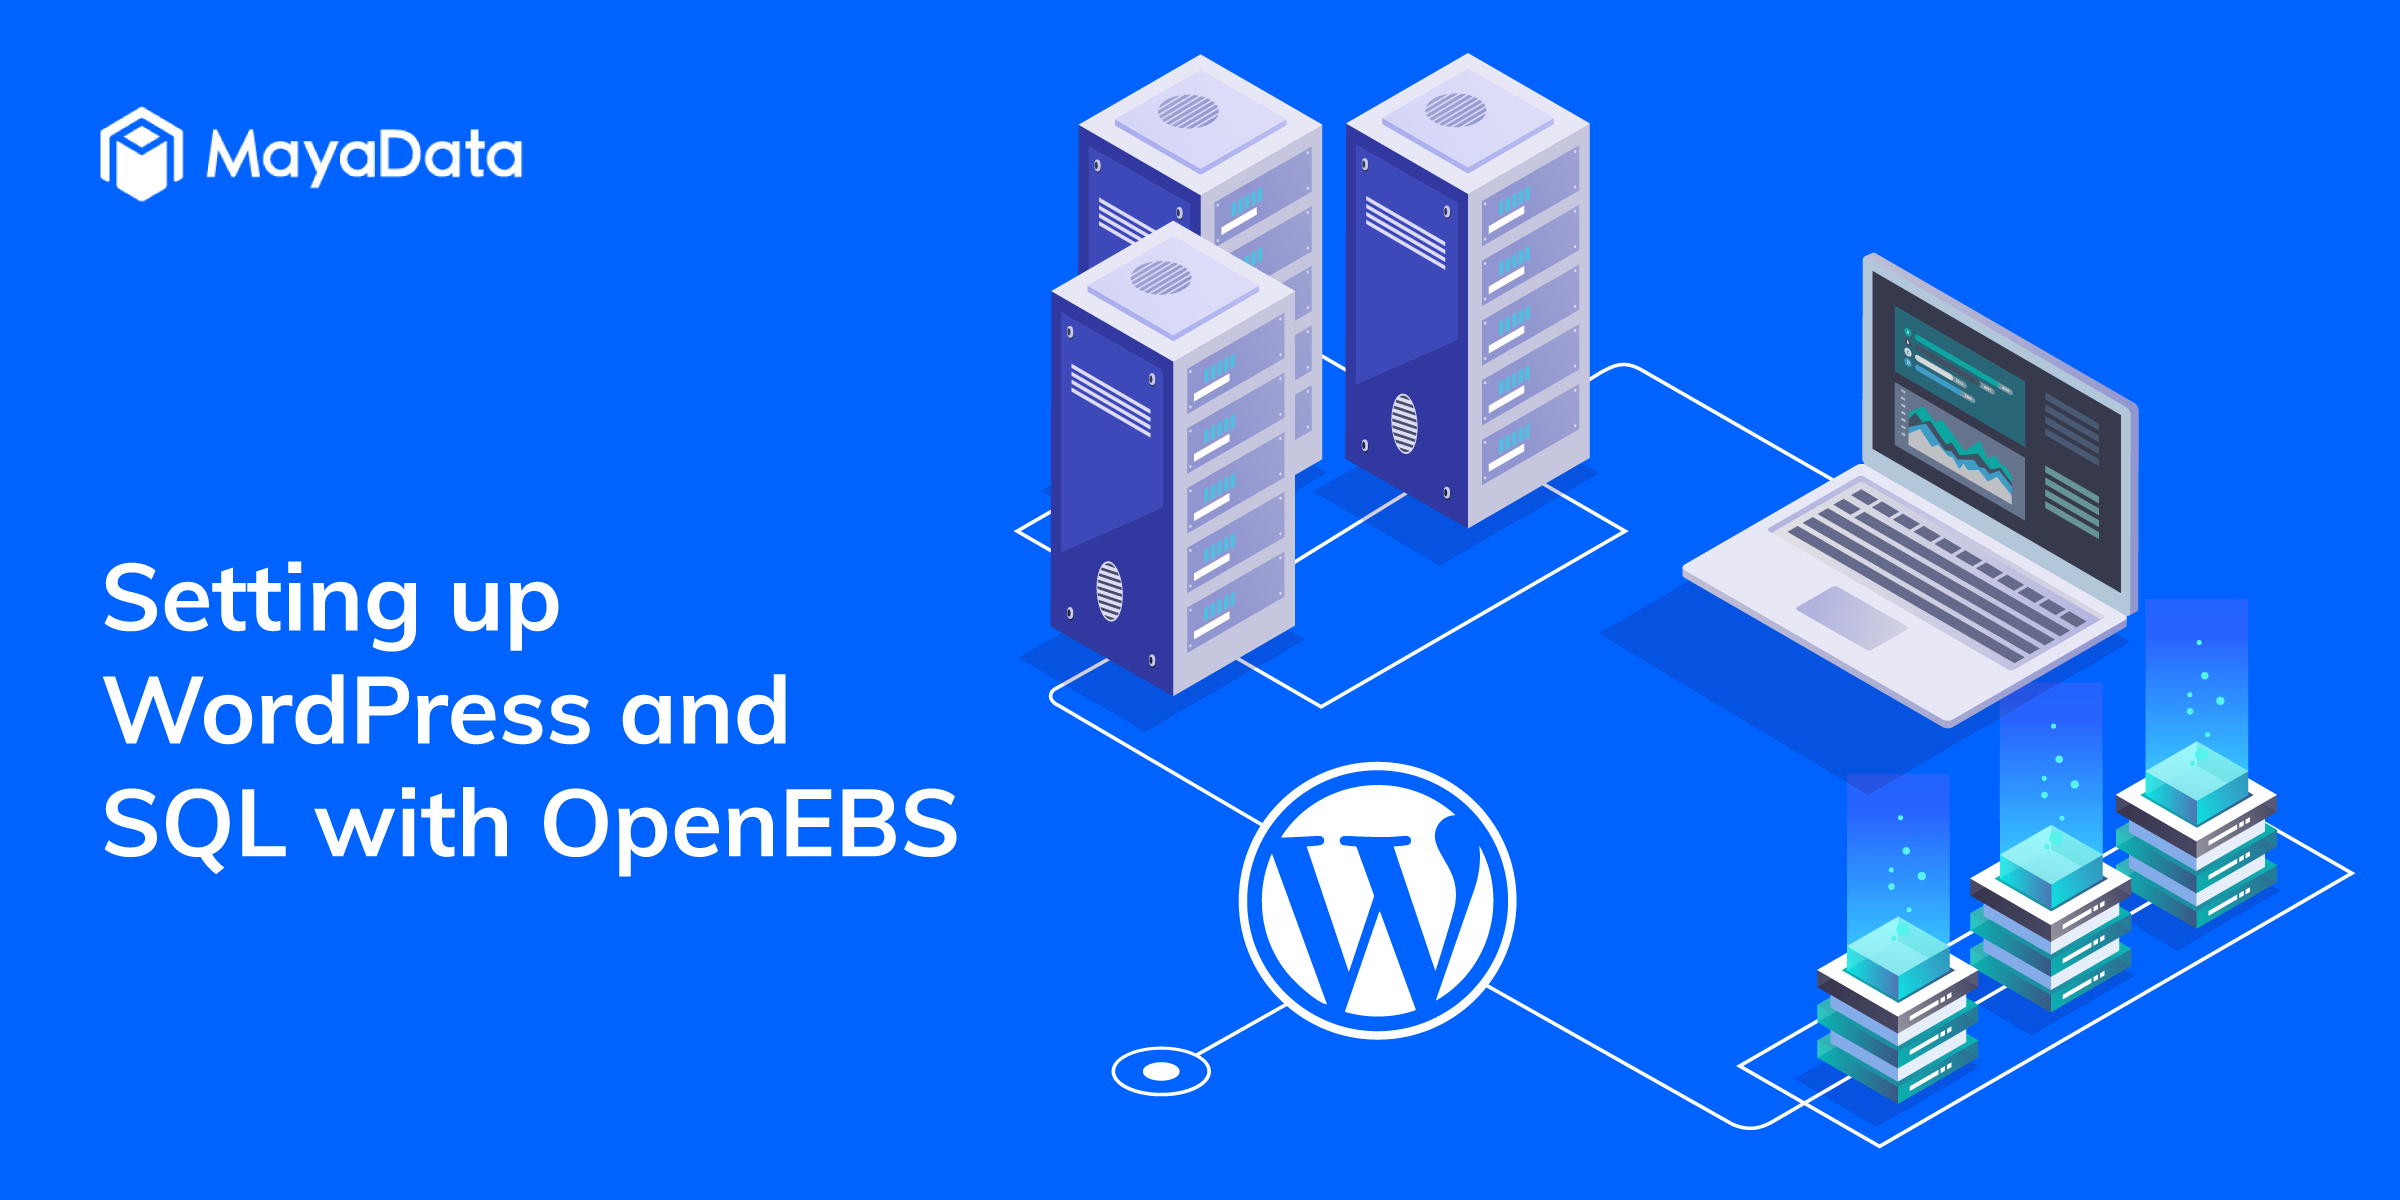 Setting up WordPress and SQL with OpenEBS